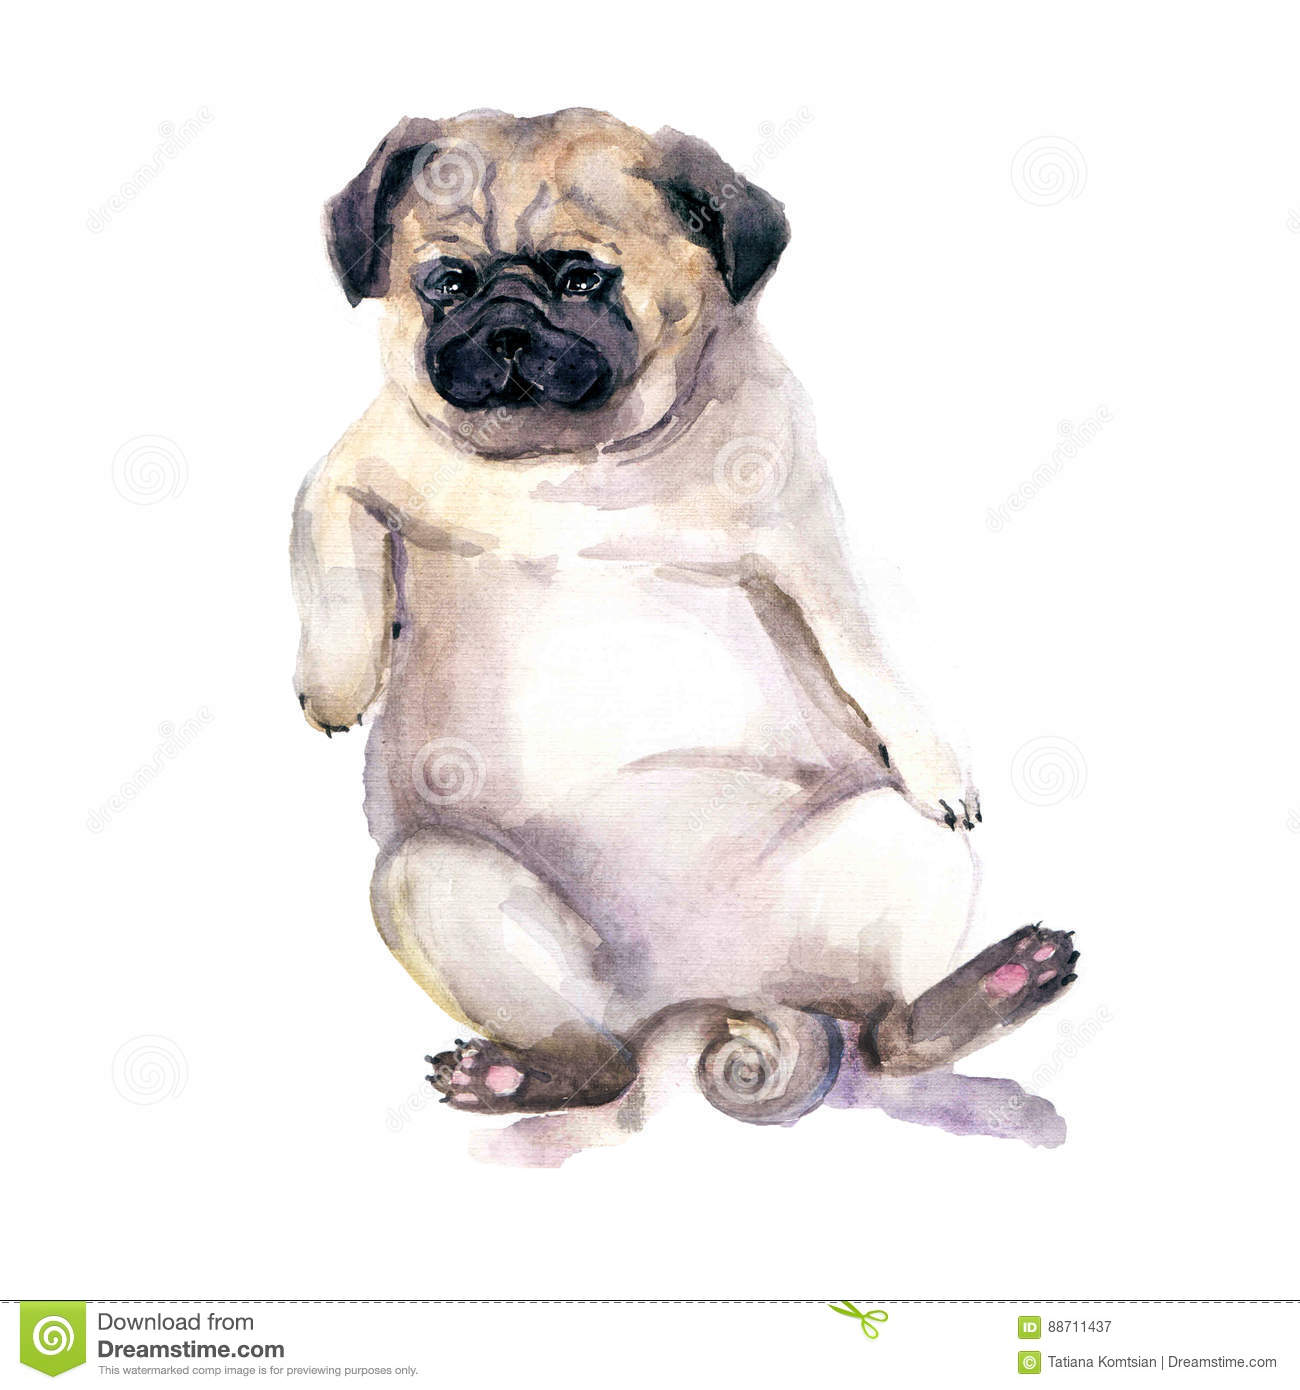 Sad Watercolor Dog Pug Dog Illustration Template For Gift - Dog gift certificate template free